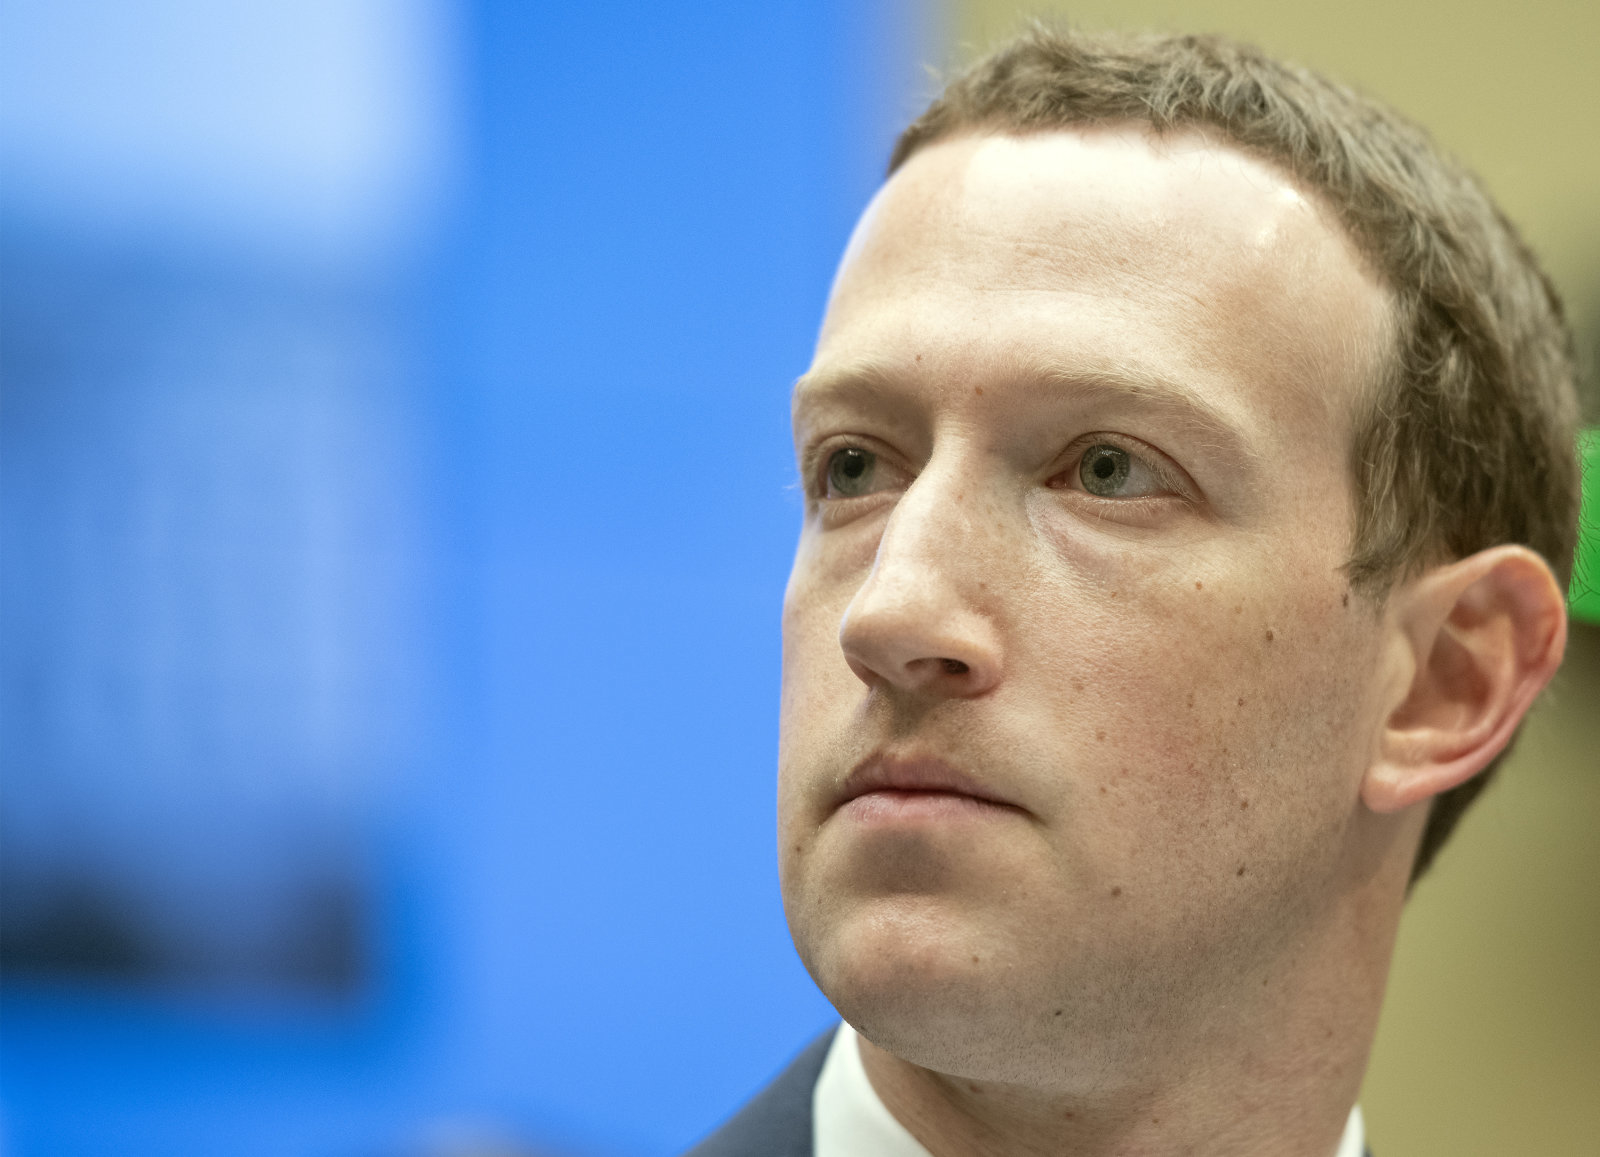 Hacker says he'll live-stream attack on Mark Zuckerberg's Facebook page